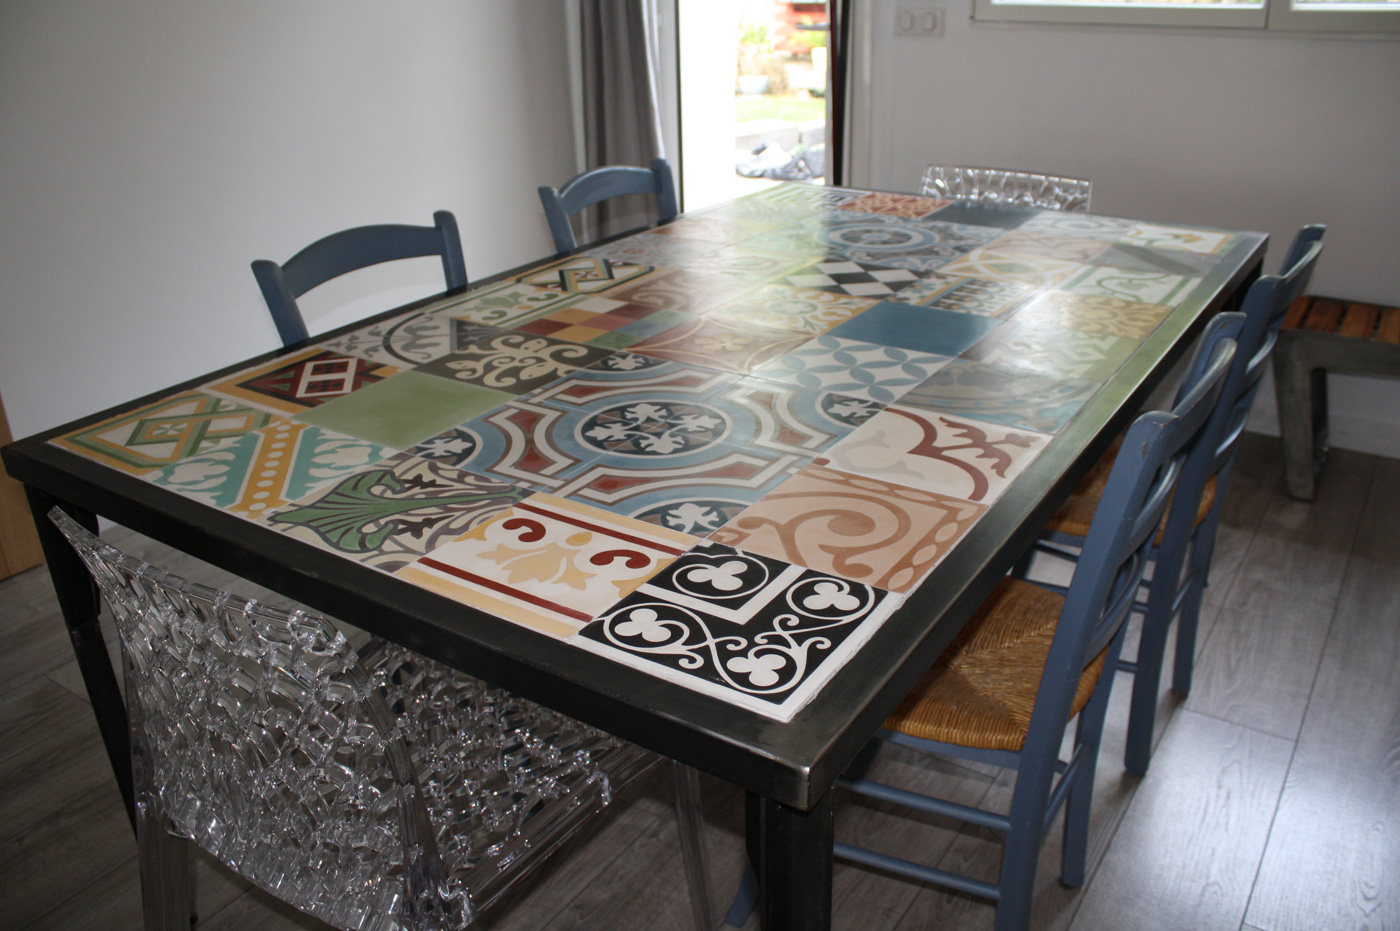 Table mosaïque carreaux de ciment